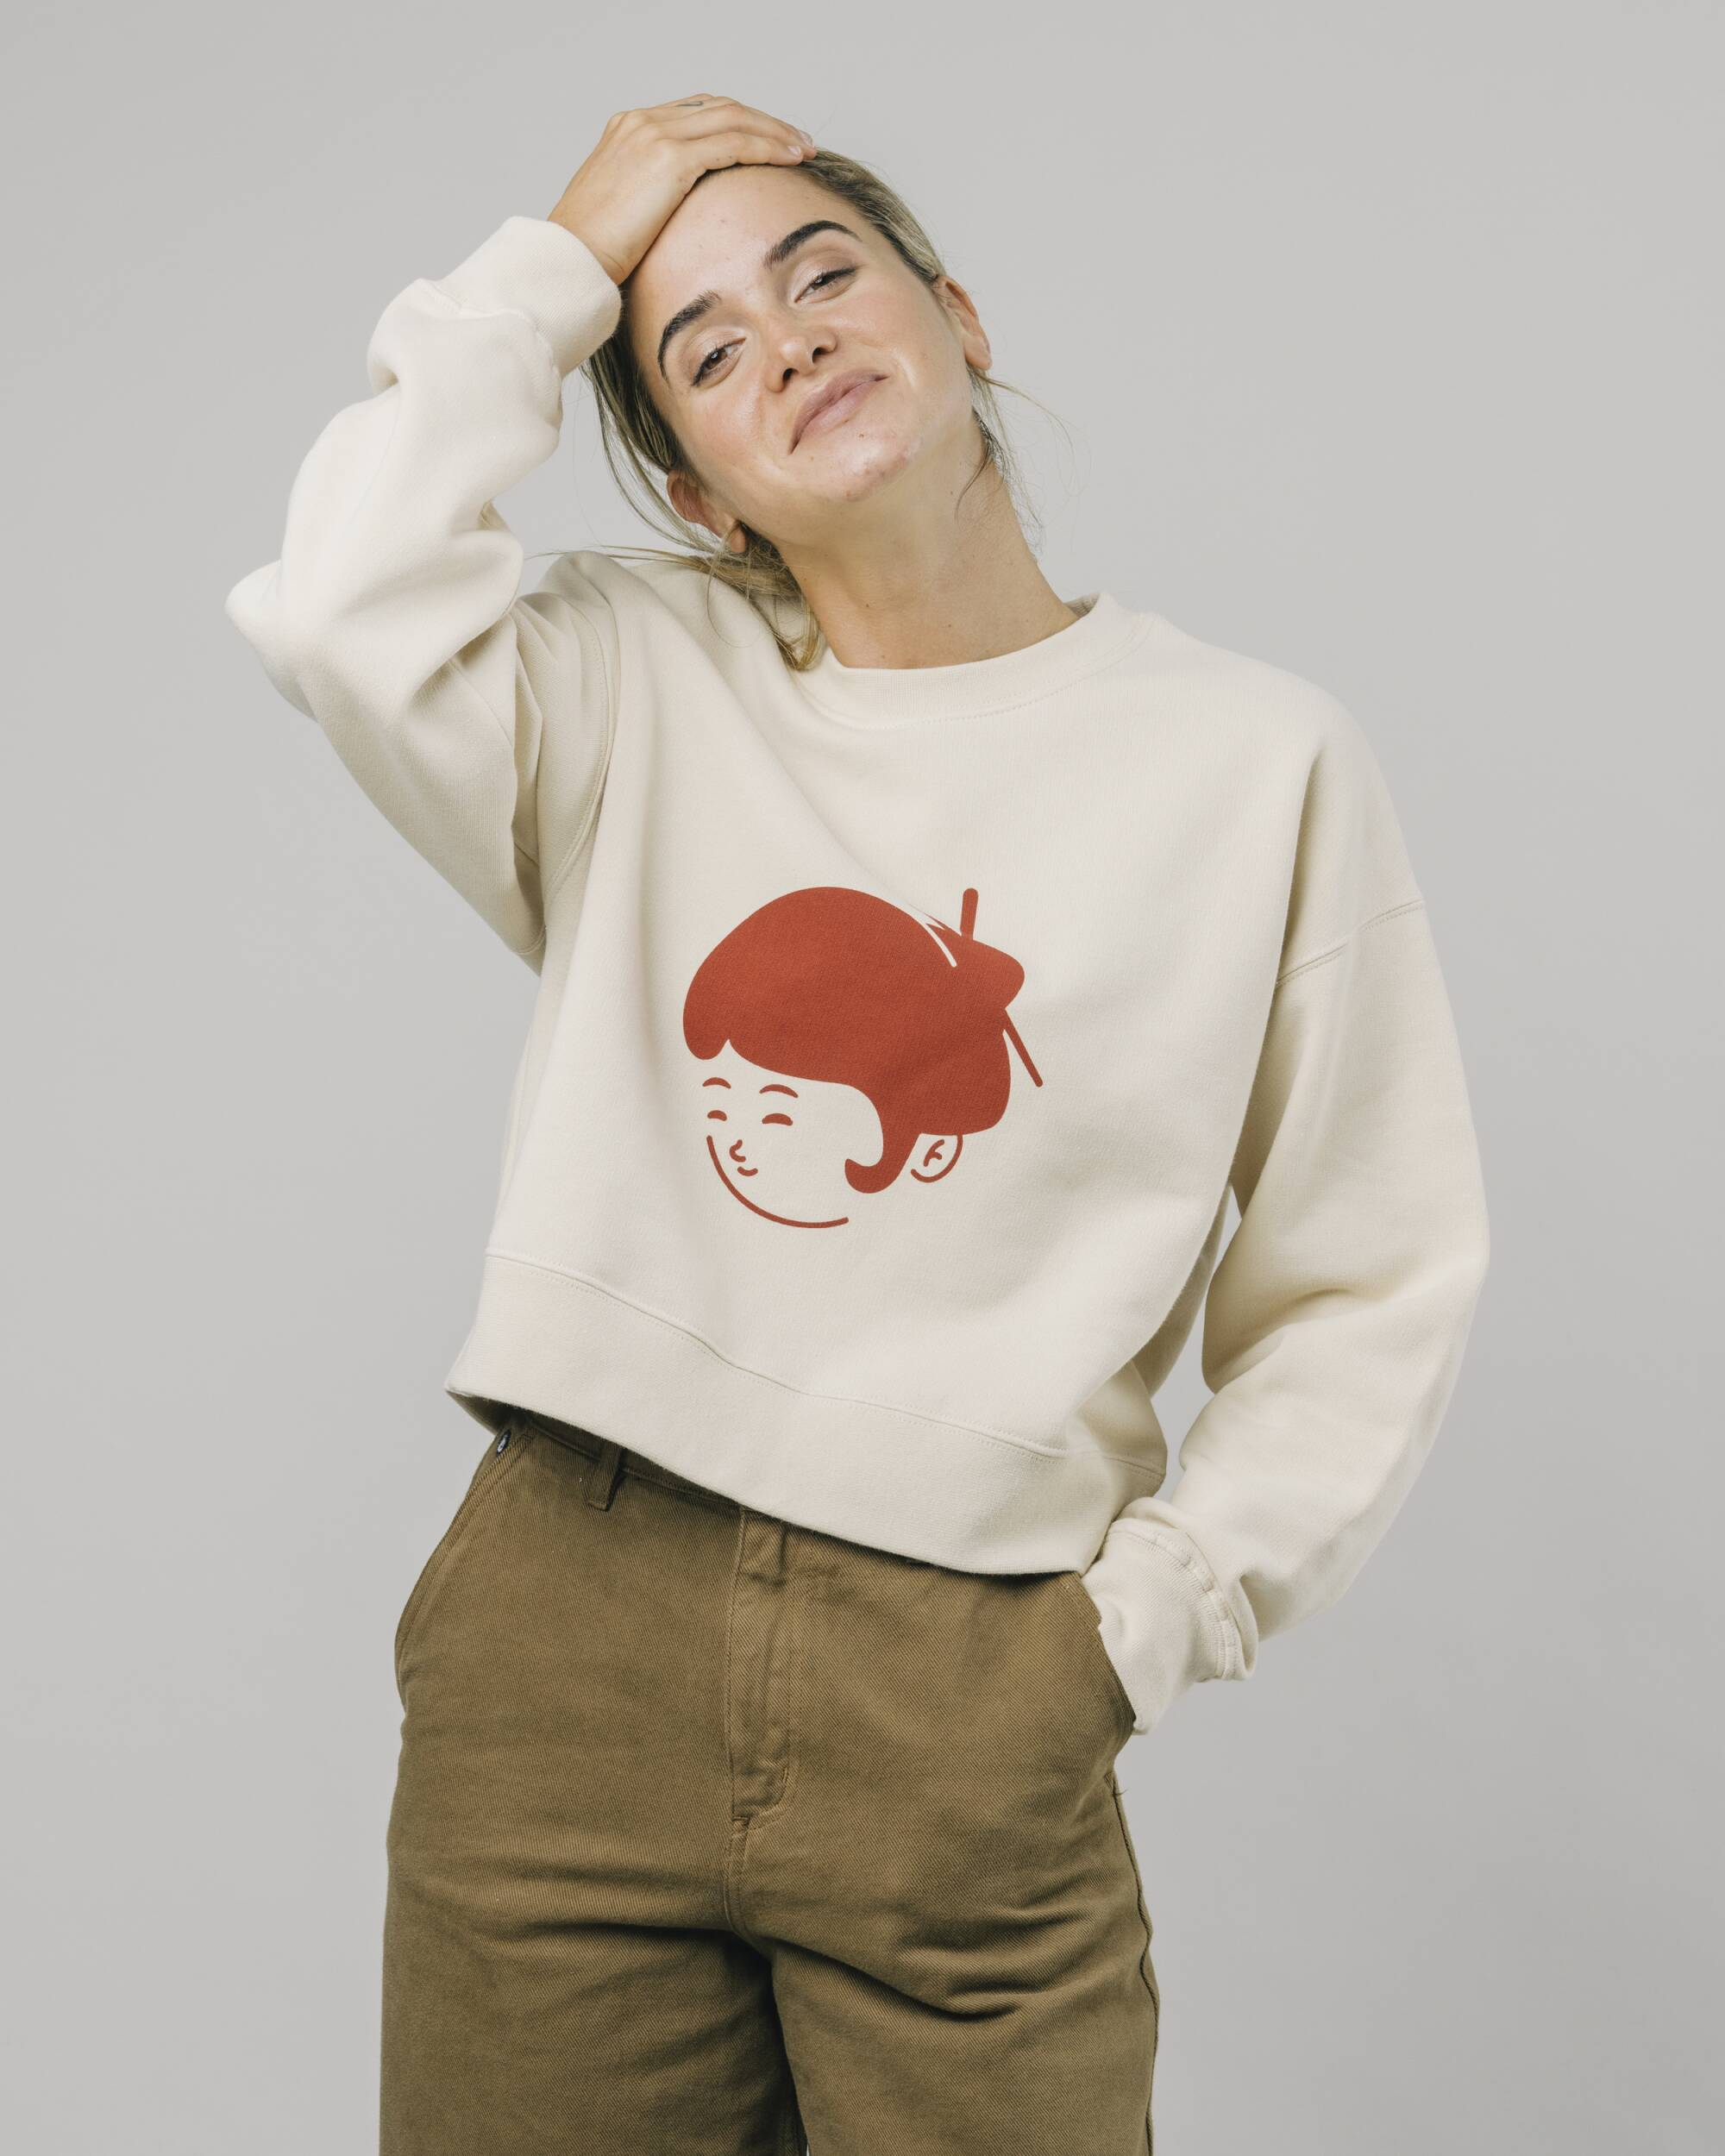 Brava Fabrics - Women's Sweatshirt - Sweatshirt for Women - 100% Organic Cotton - Model Yoko